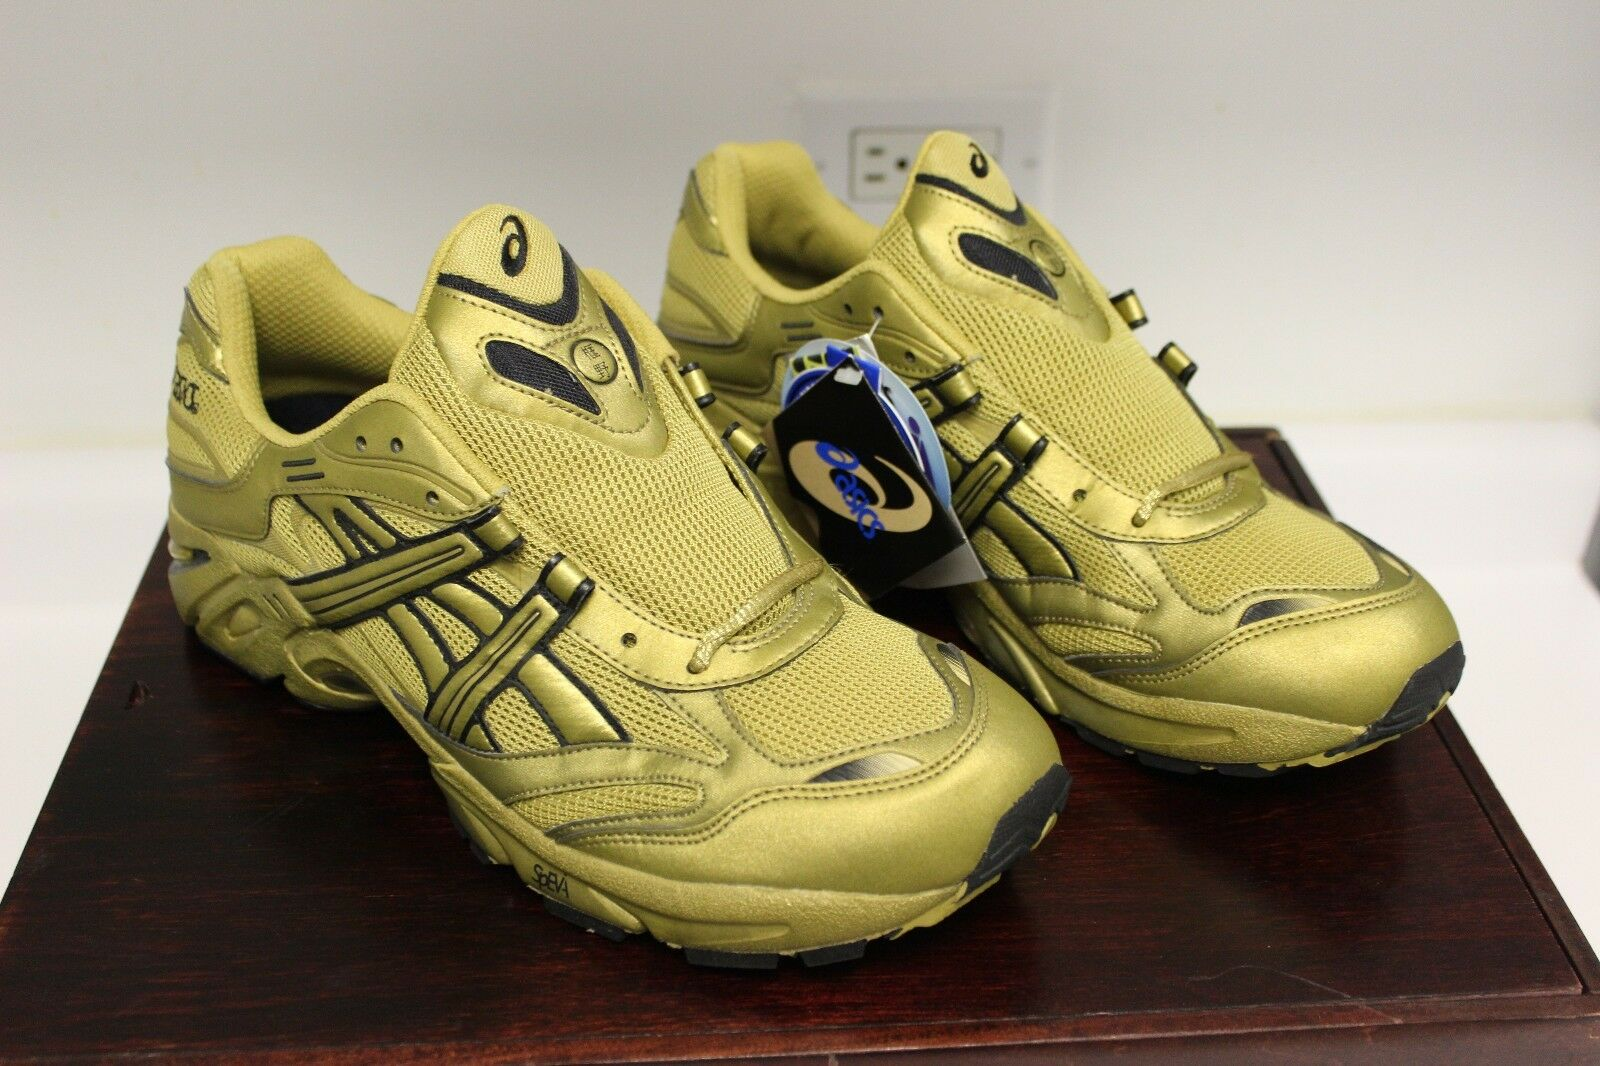 ASICS GEL KAYANO ALIFE GOLD LIMITED EDITION x ALIFE KAYANO RIVINGTON CLUB RUNNING SNEAKERS 11 1bcc53